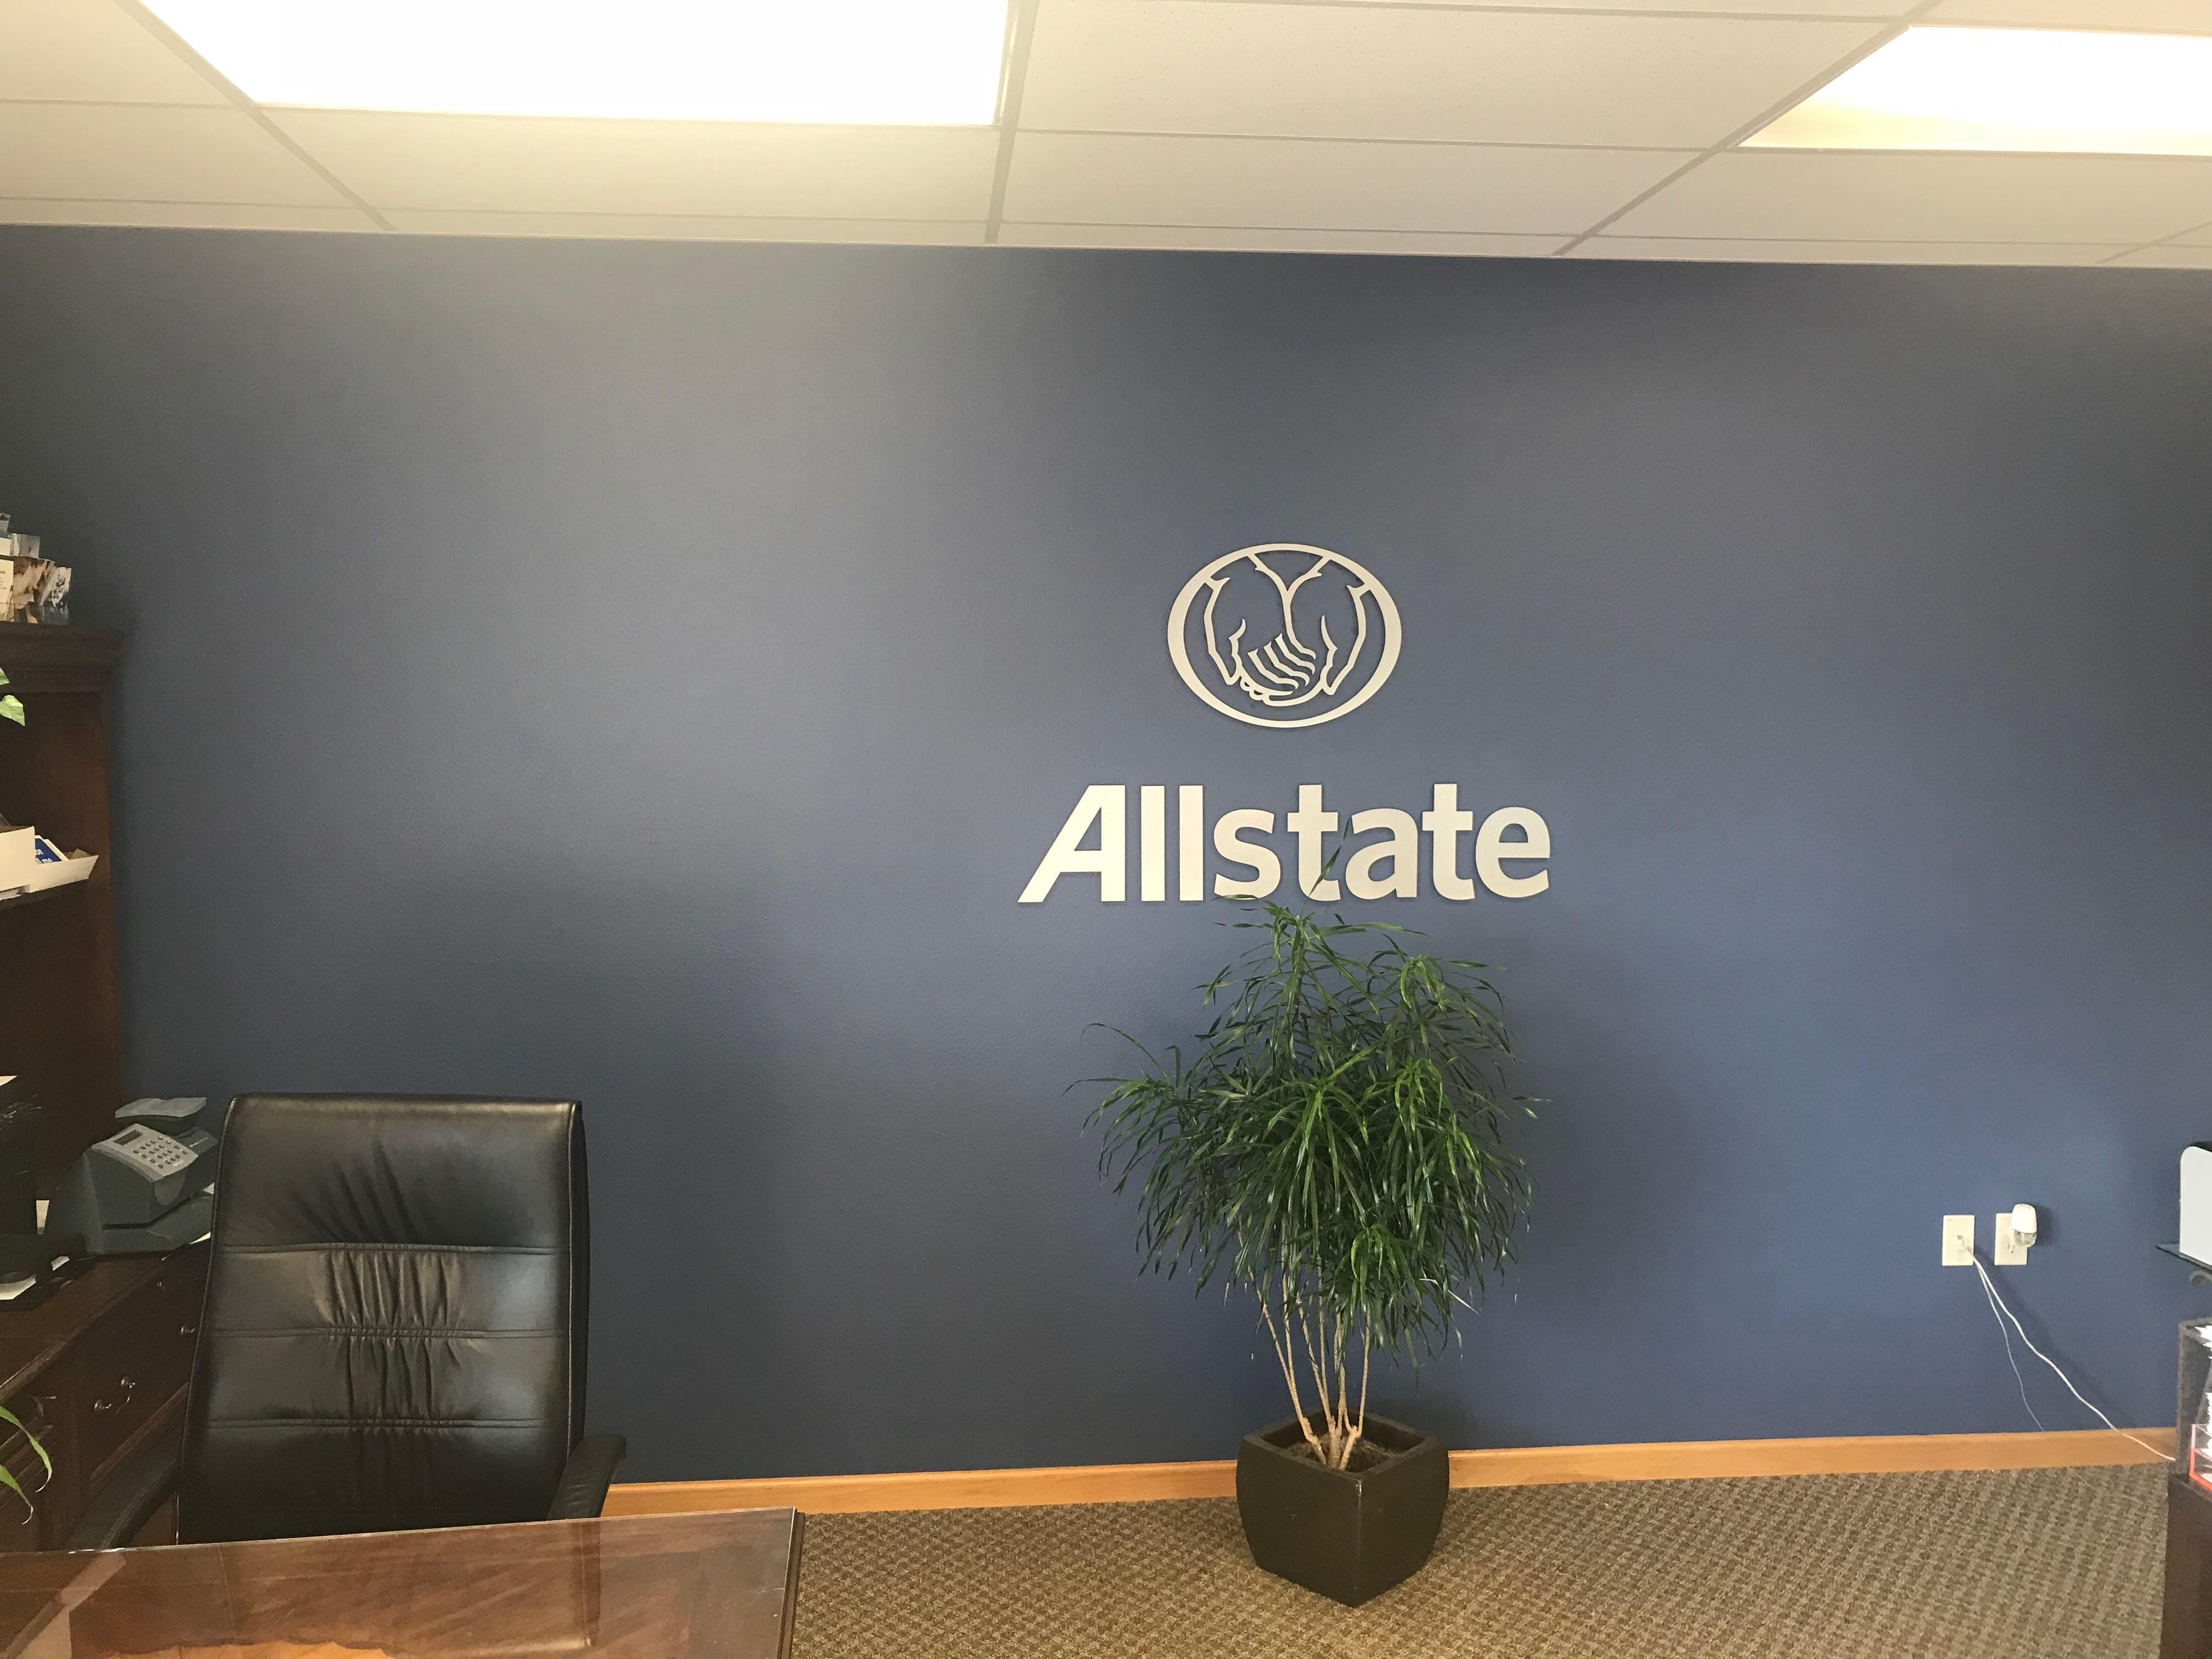 Kevin Heiting: Allstate Insurance image 5